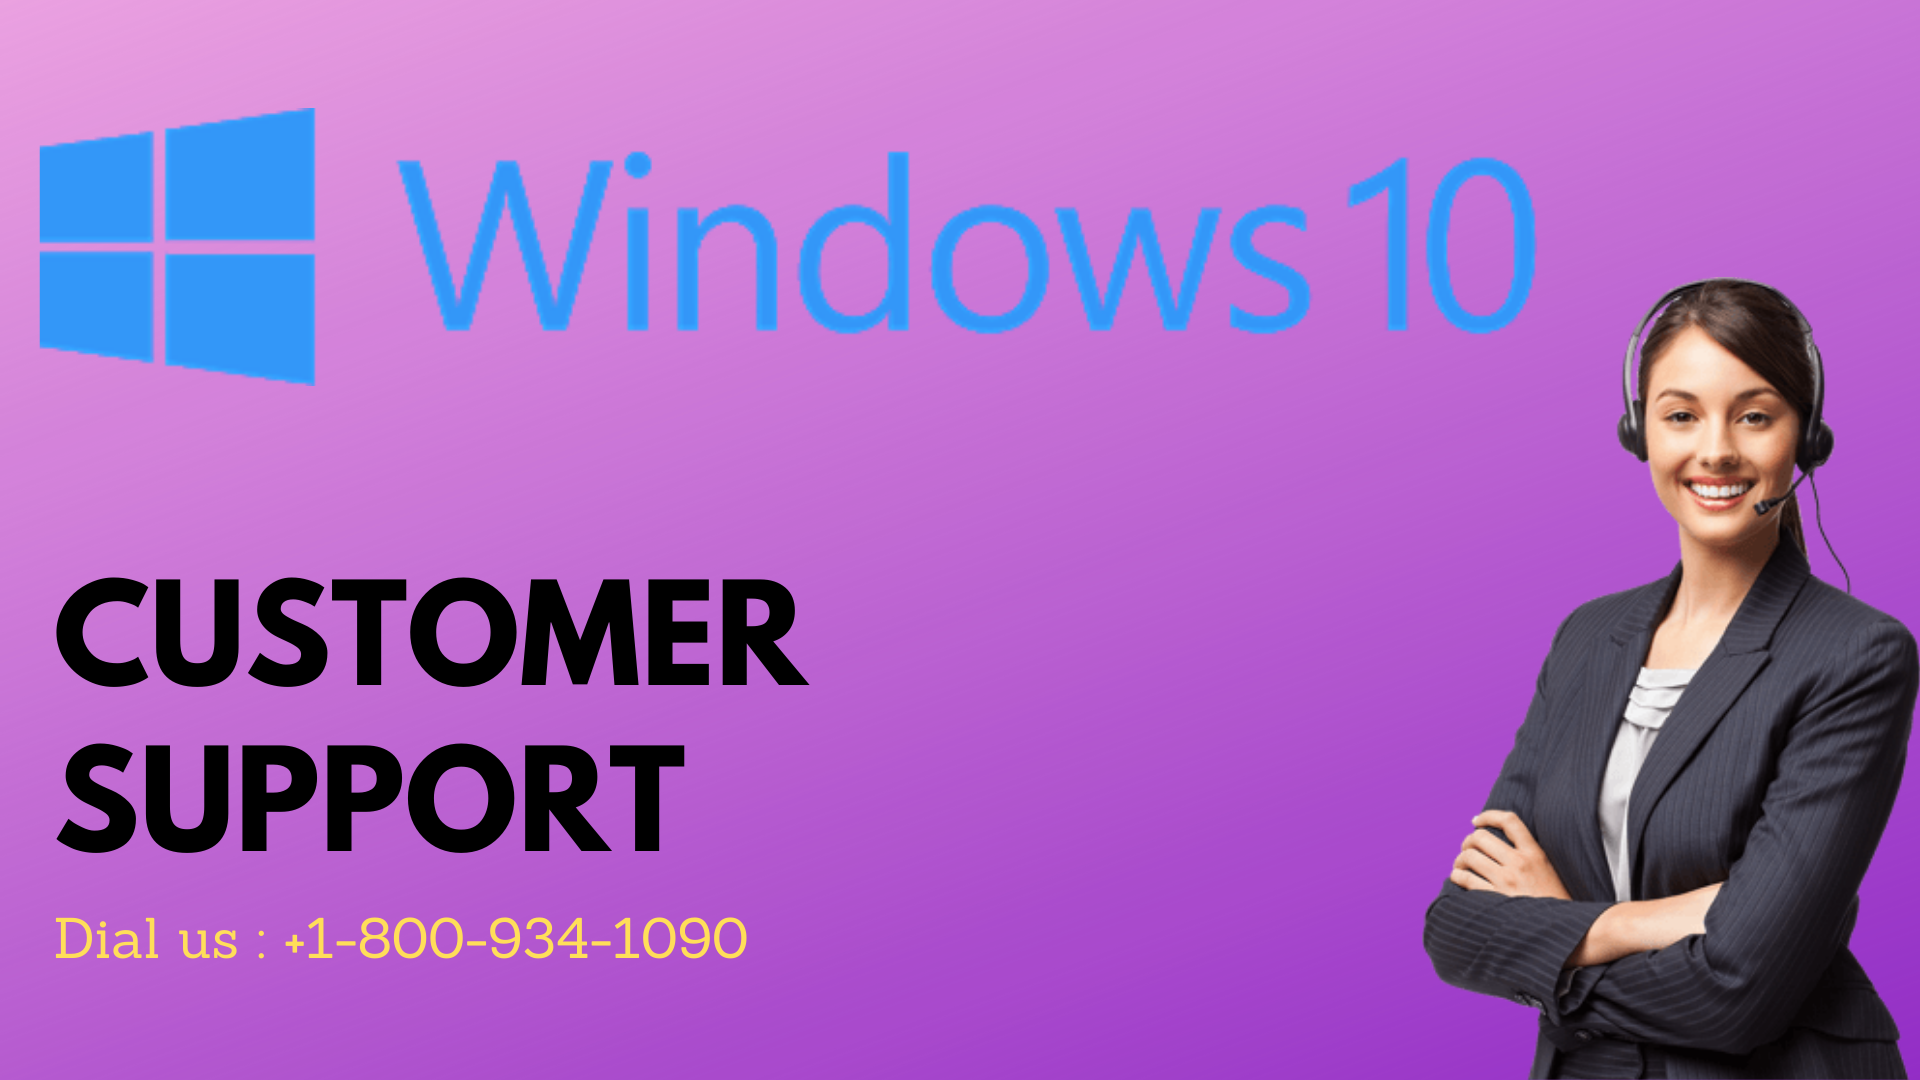 Webroot Uninstall Tool Windows 10. (2)